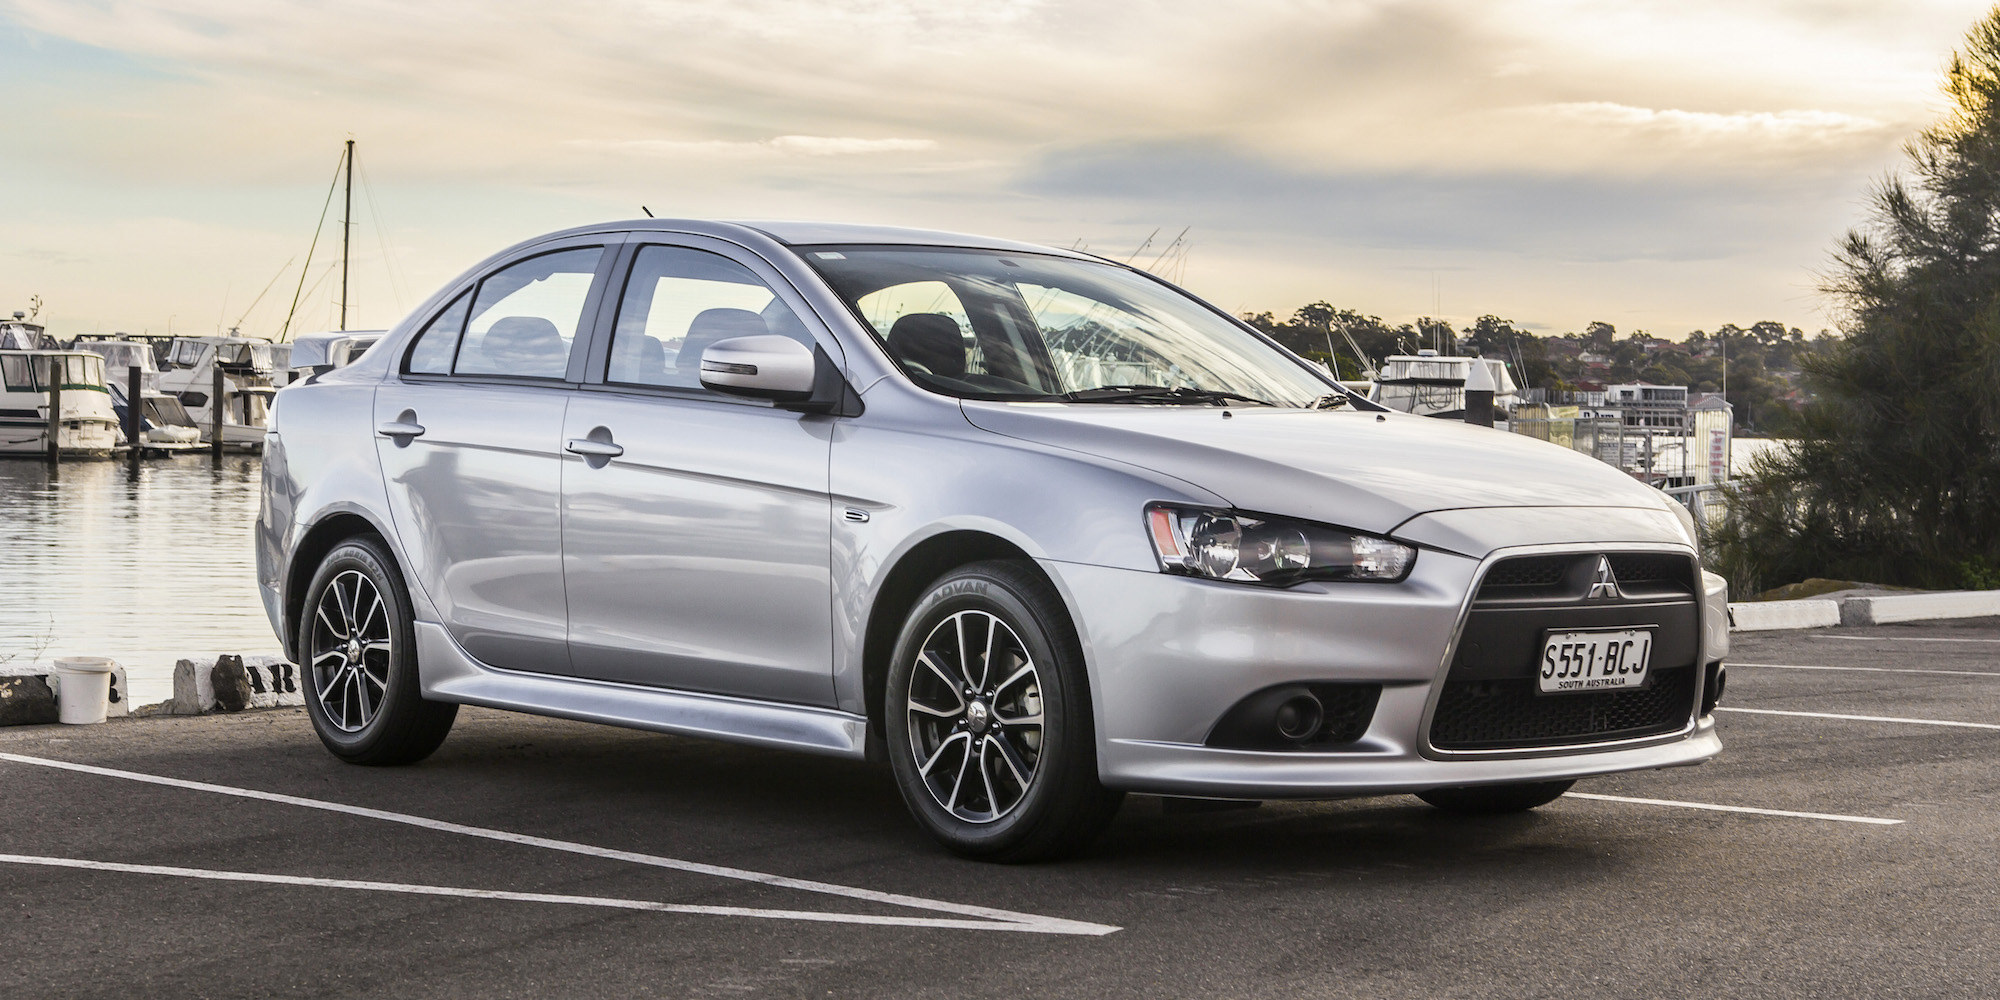 2012 Ford Fusion For Sale >> 2015 Mitsubishi Lancer ES Sport Review | CarAdvice